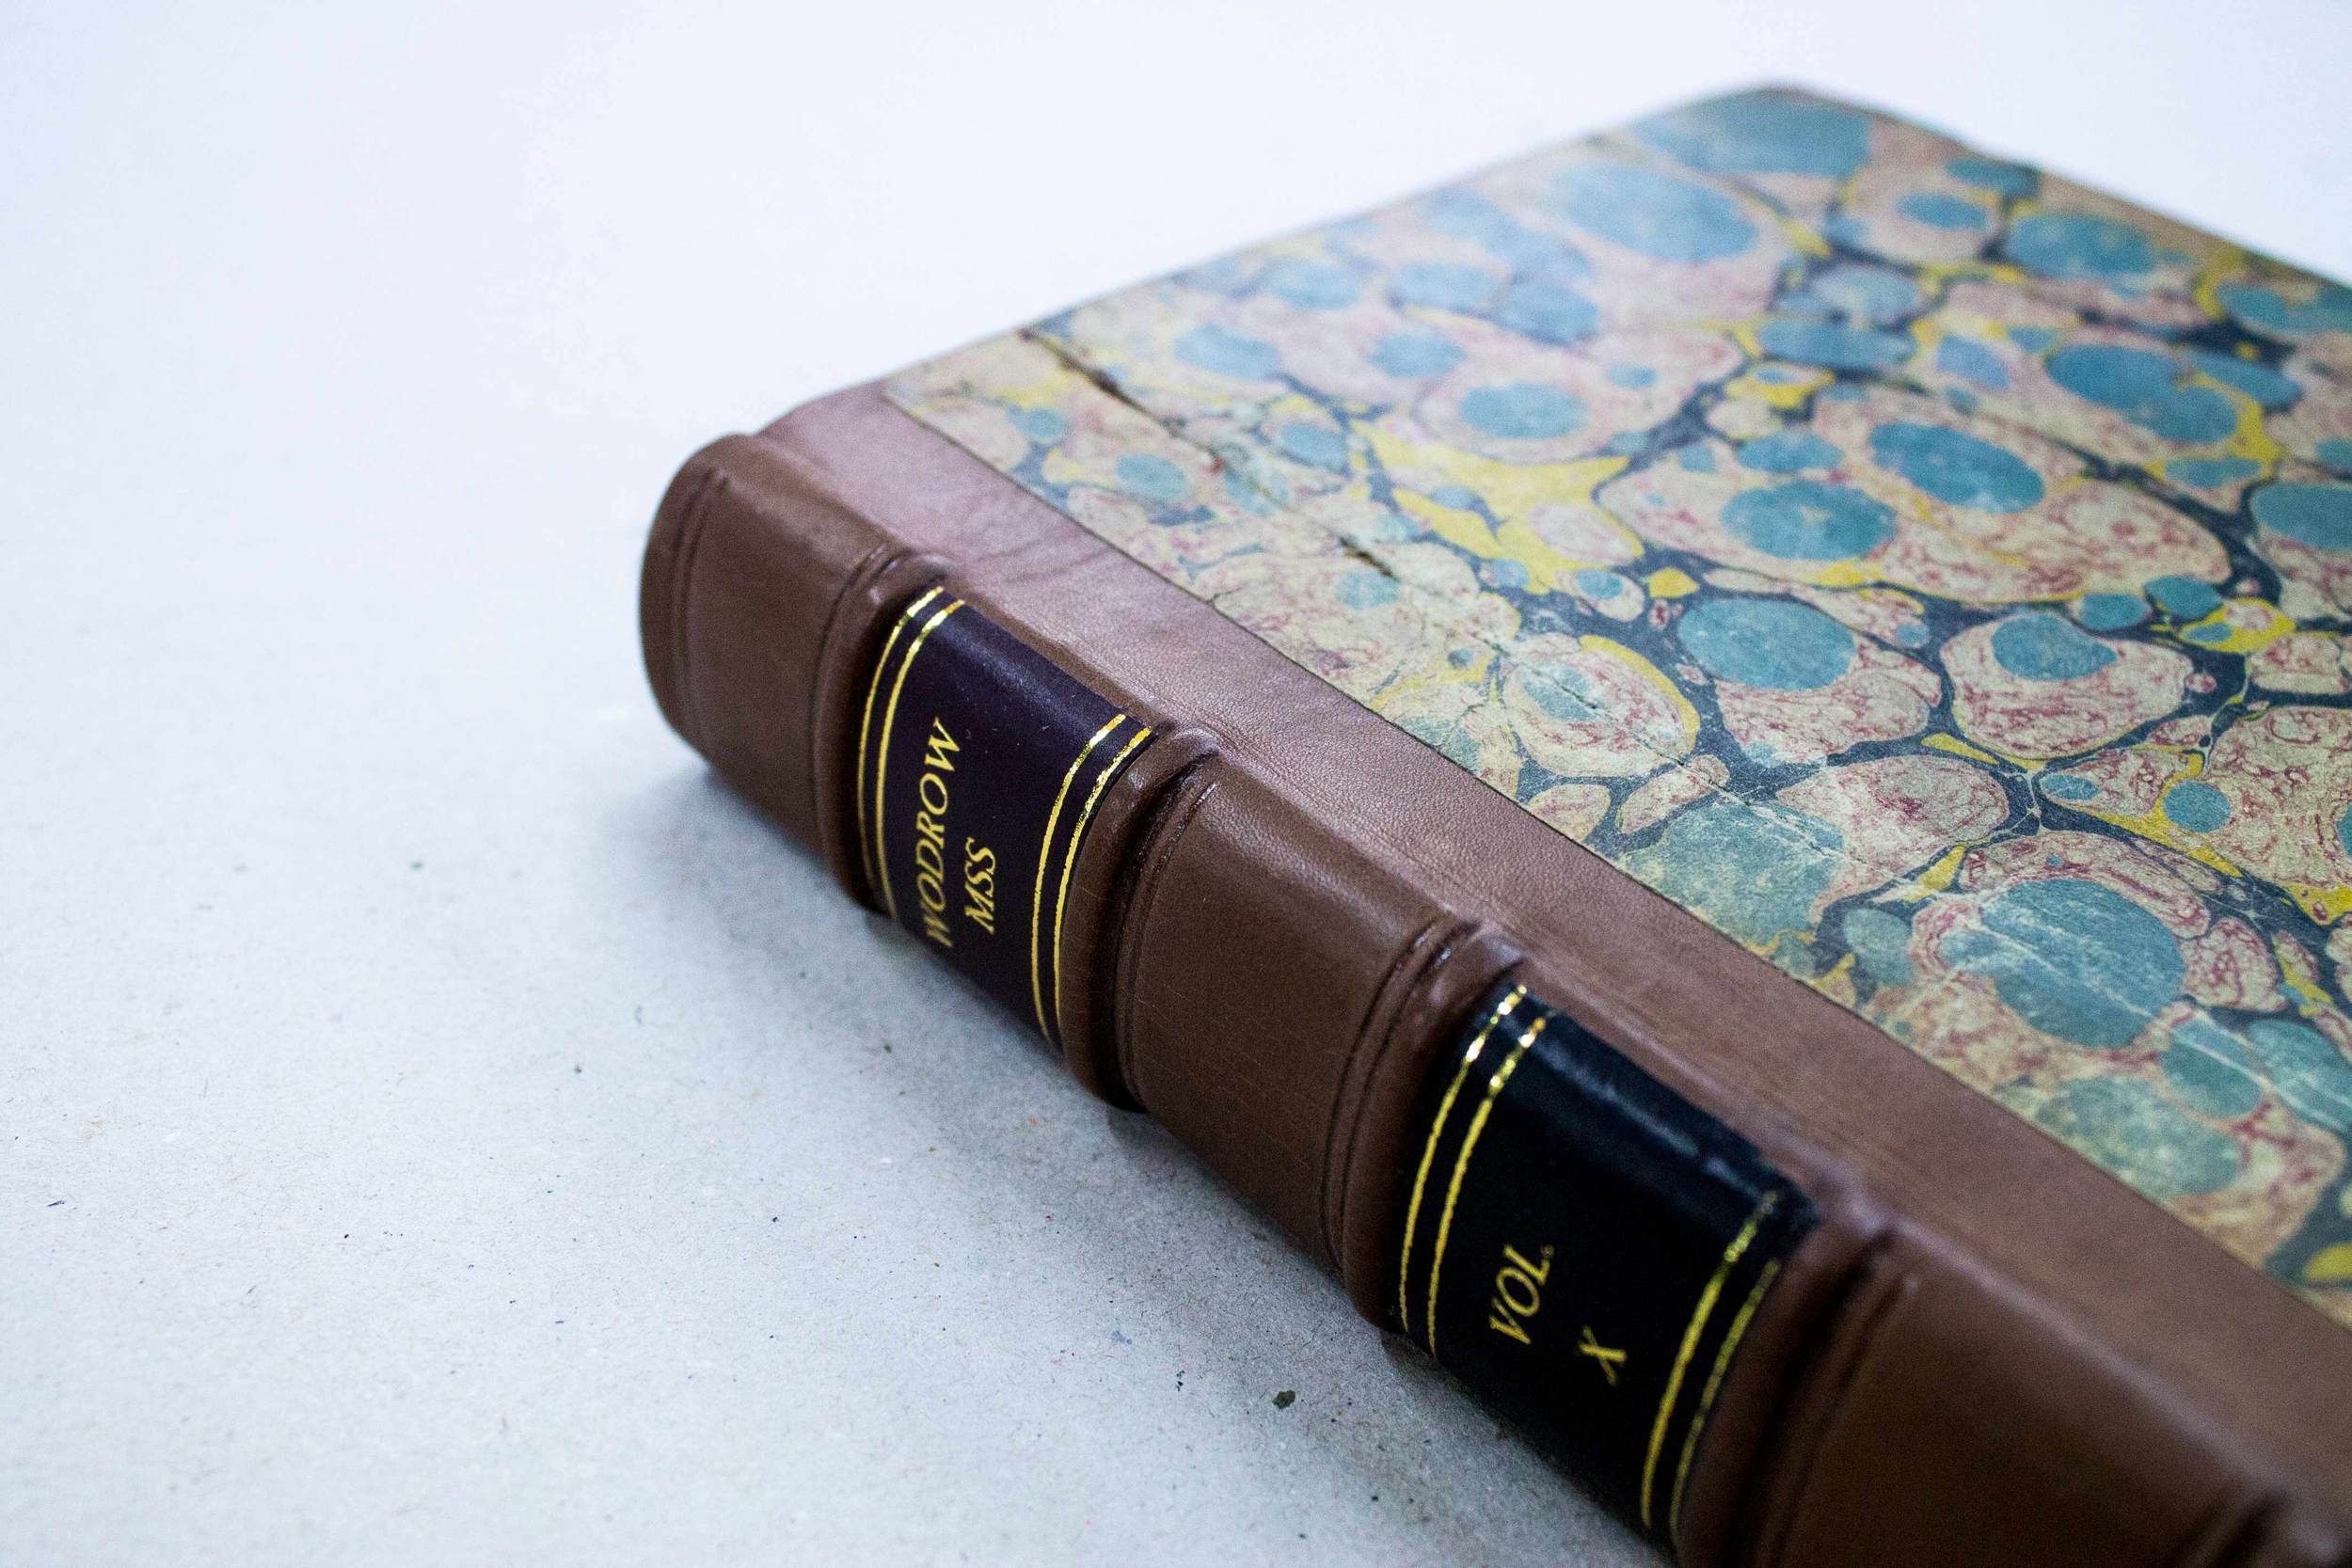 Restored book with leather spine